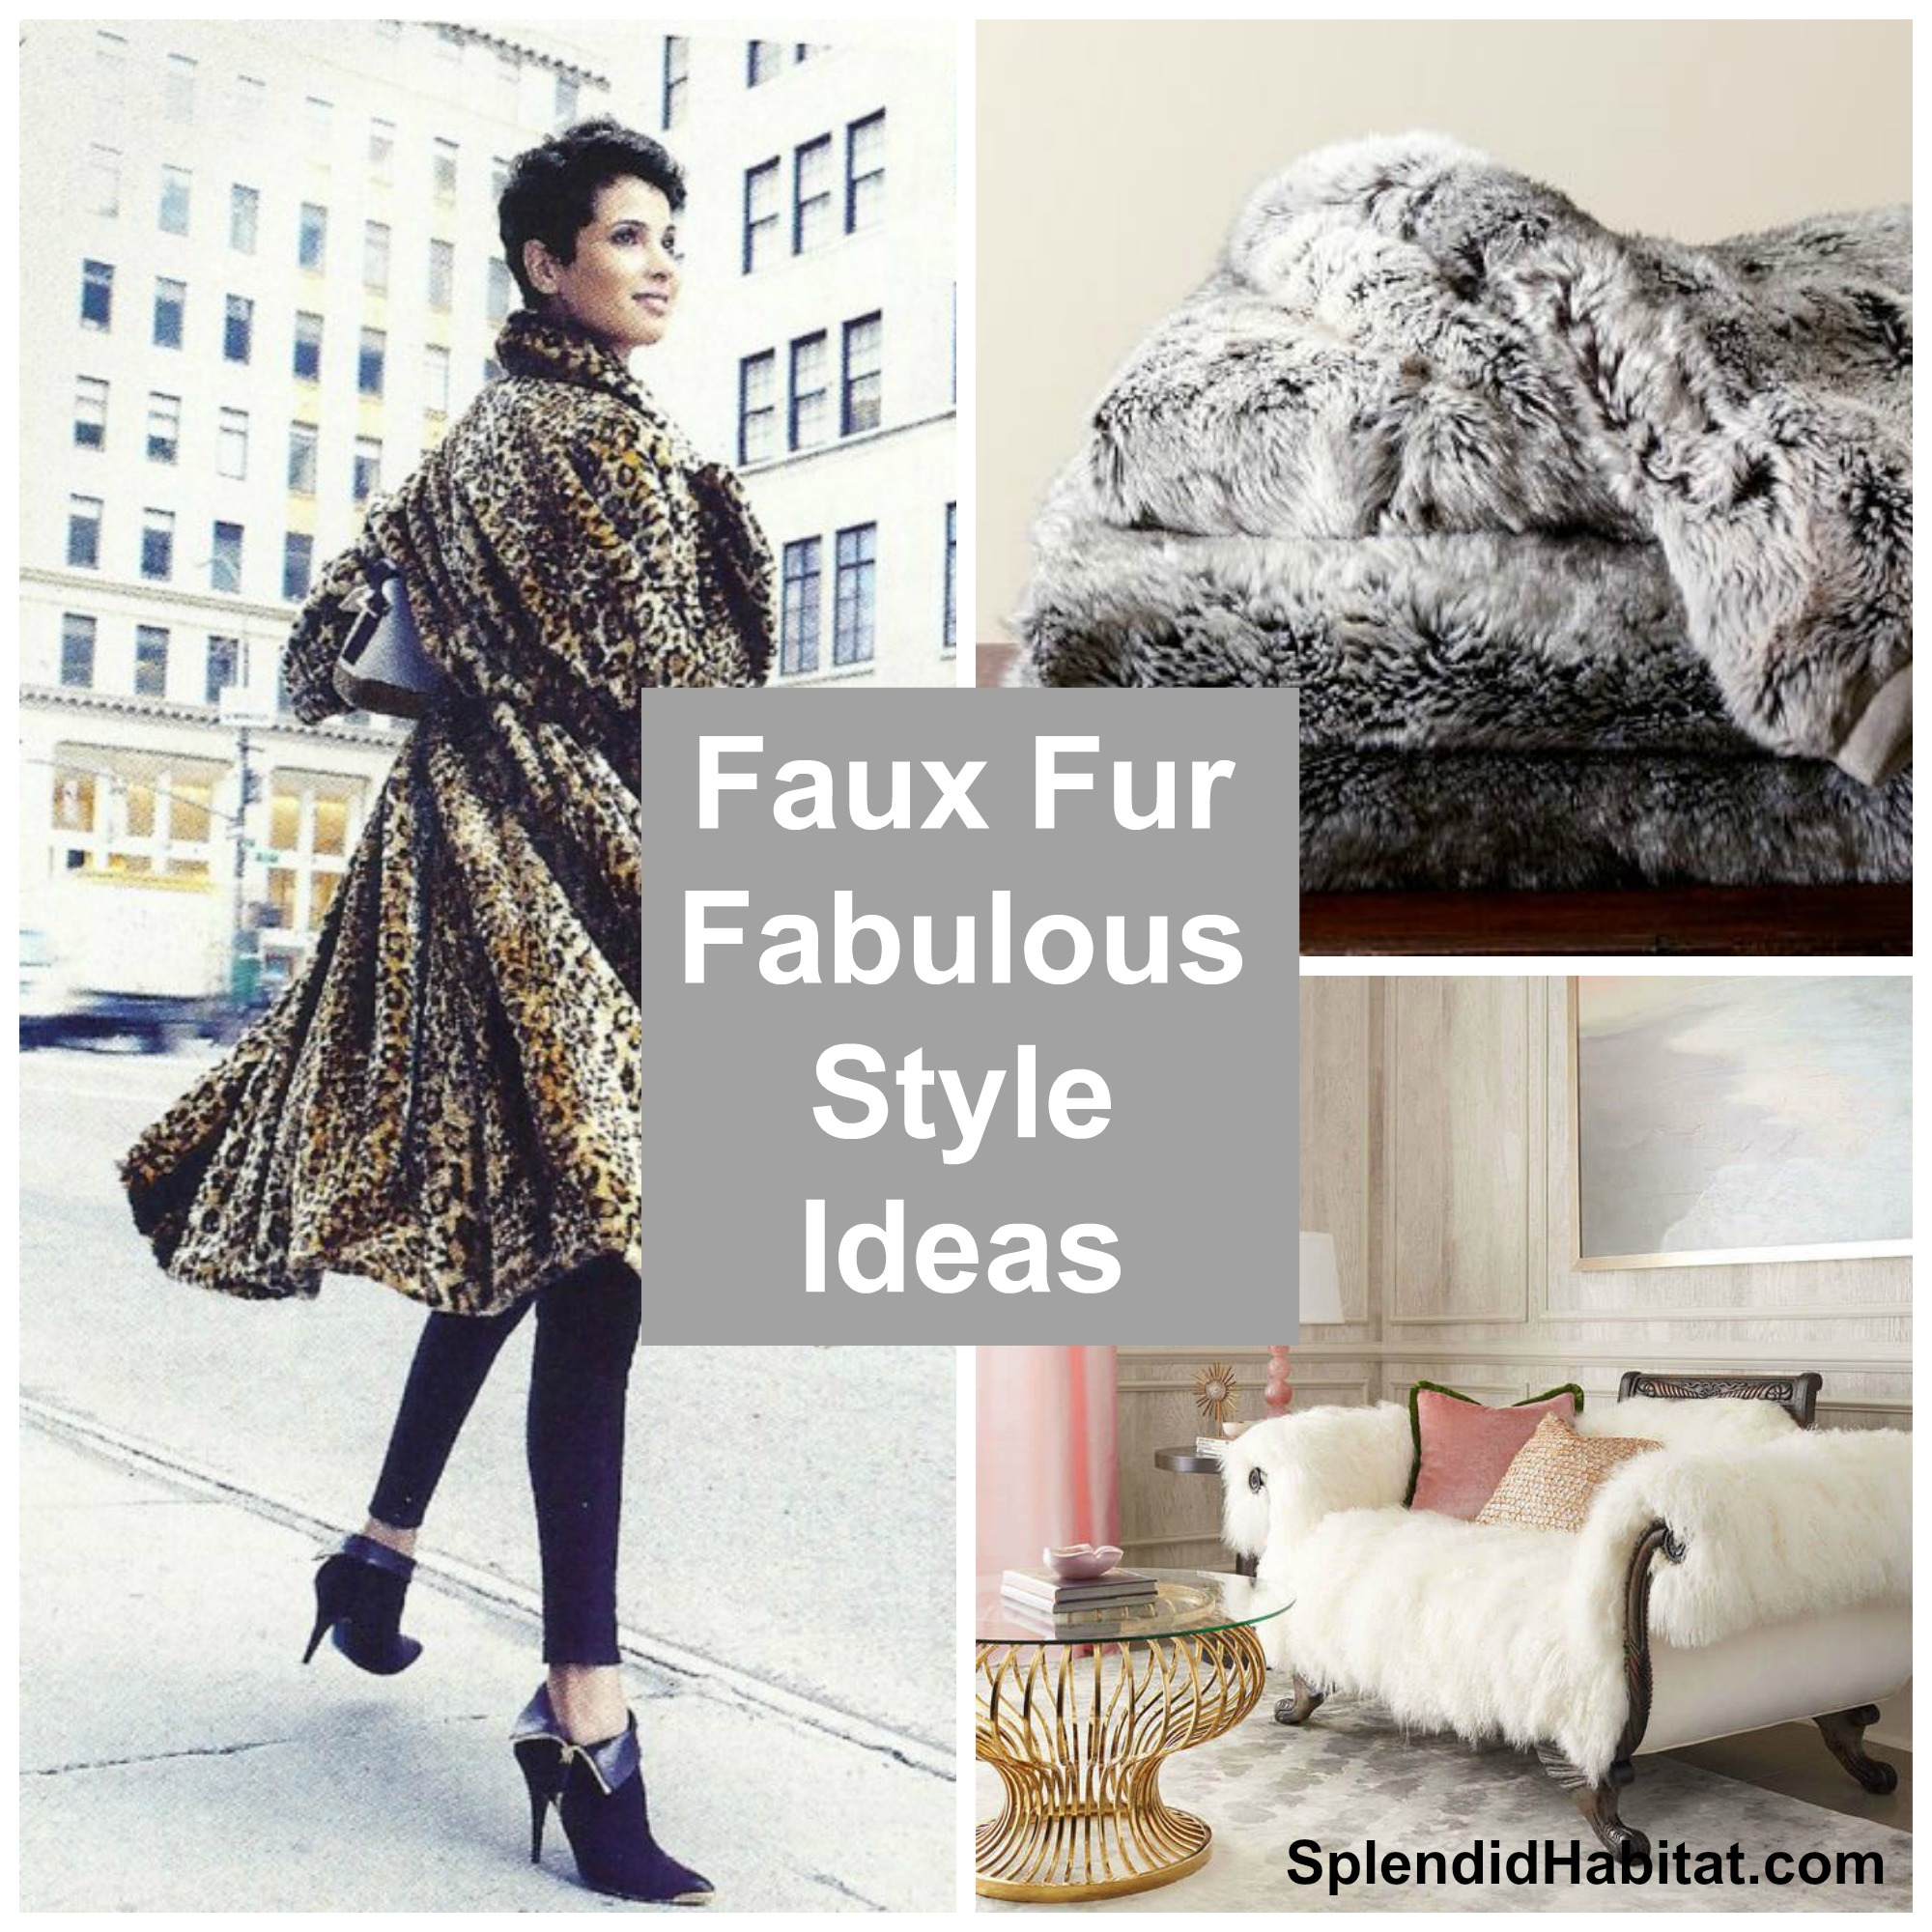 Warm And Cozy With This Winter With Fabulous Faux Fur Style Faux Fur